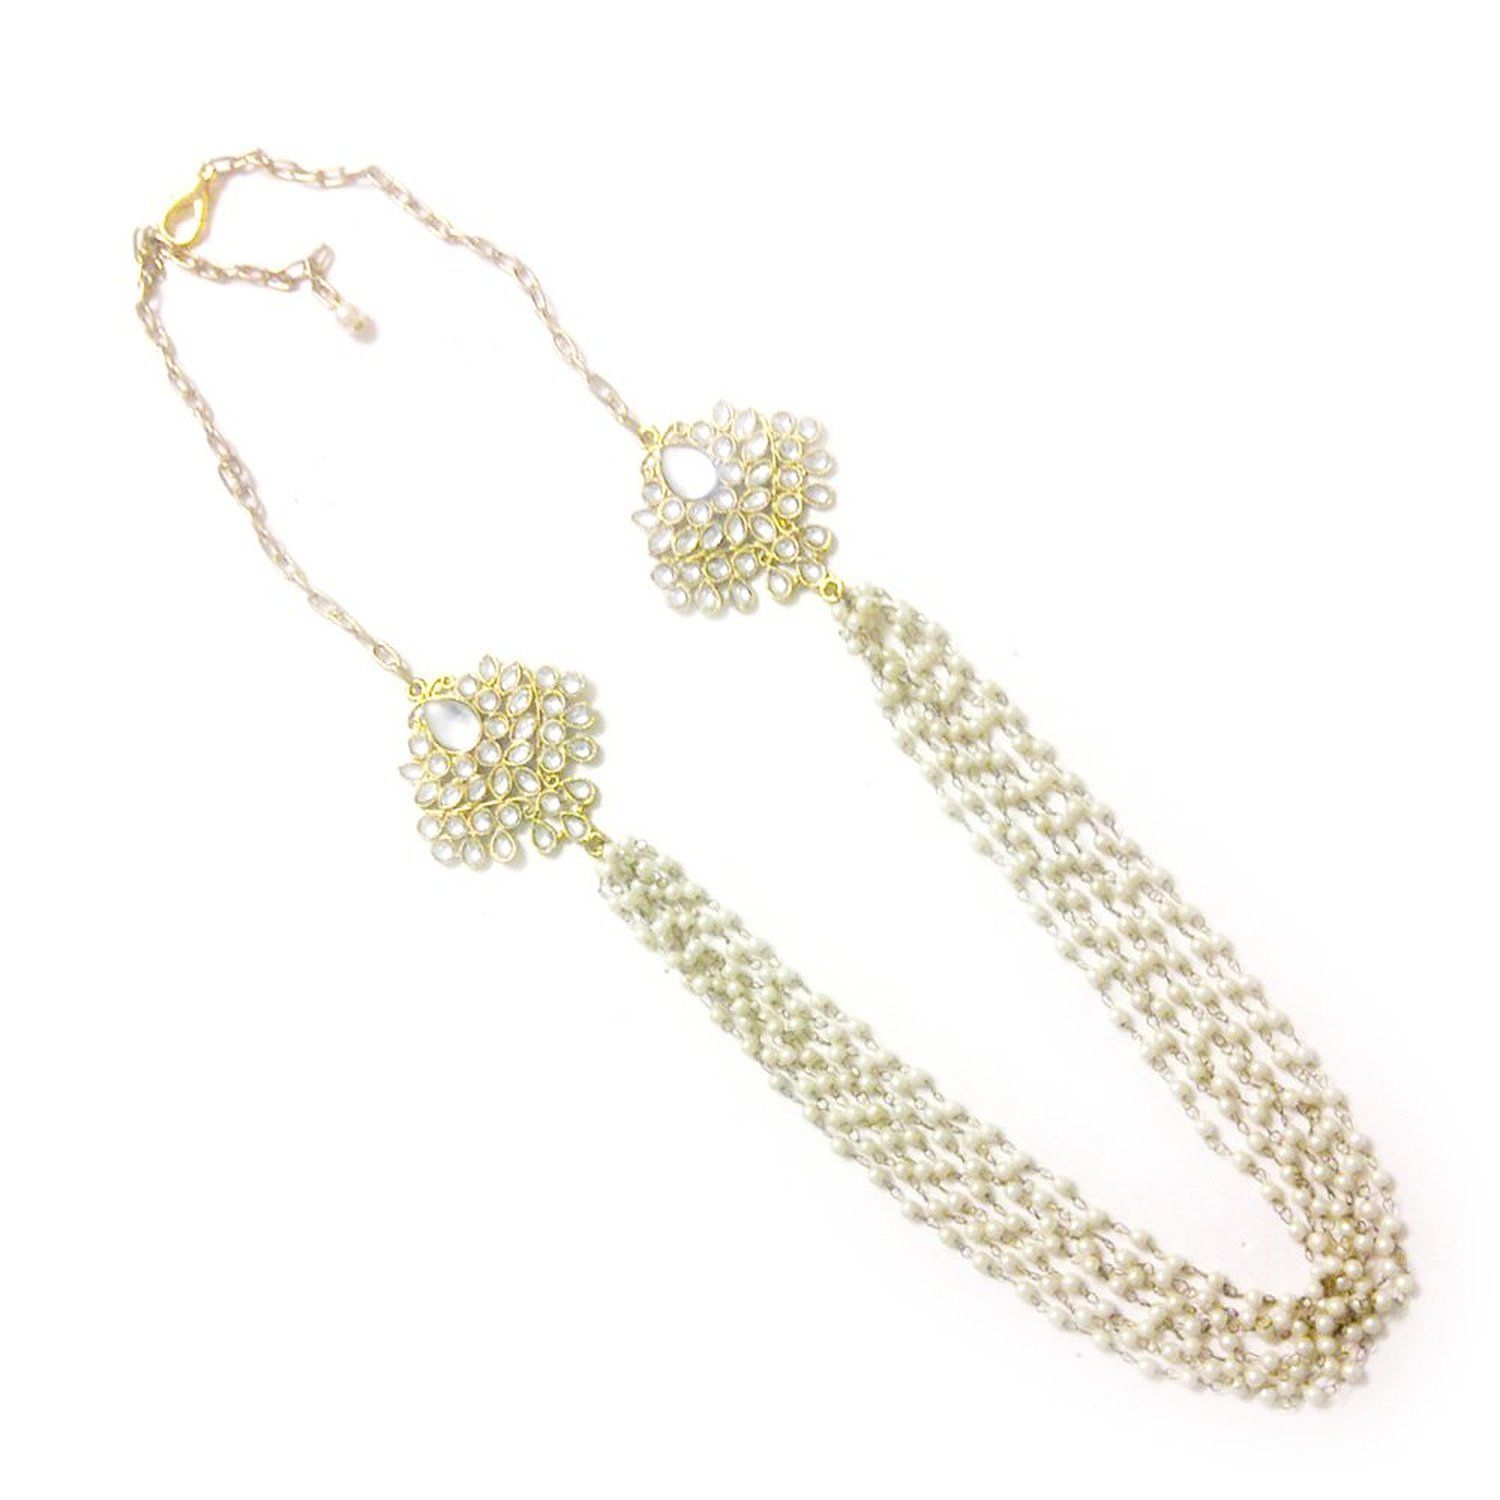 Buy Barohk White Kundan And Linked Pearl Necklace For Women Online at Low Prices in India | Amazon Jewellery Store - Amazon.in